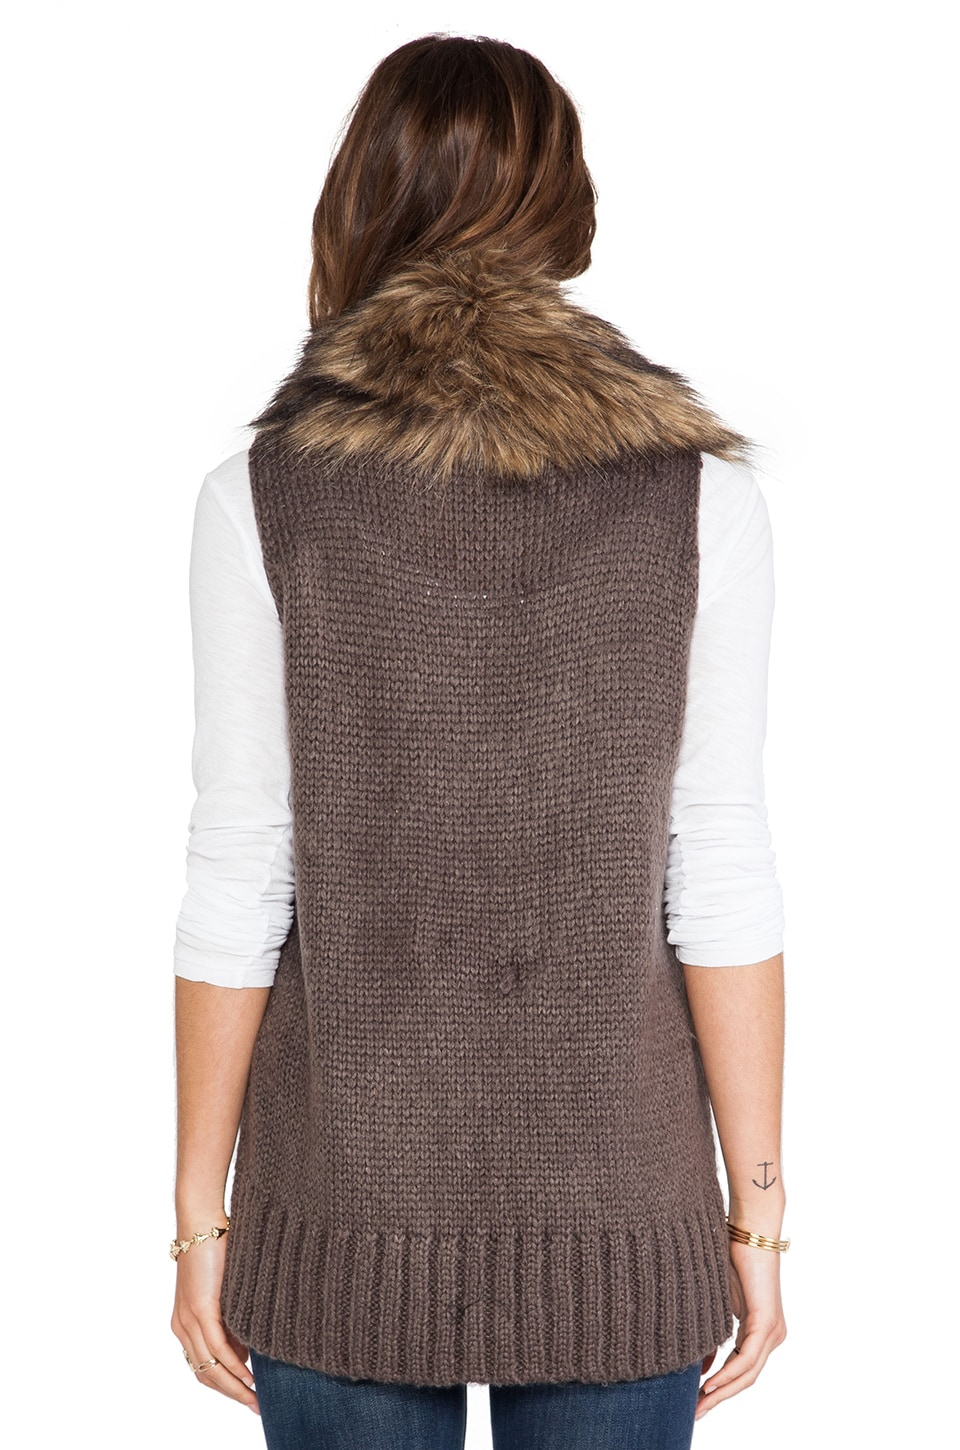 Beautiful white faux fur vest with genuine leather trim Cinched waist detail makes it super feminine Peplum bottom No size tag but fits like a Medium/Large & waist can be adjusted. YMI (W) Women's Small Blue Vest Puffer Zip Up Faux Fur Trim. $ Buy It Now. or Best Offer.